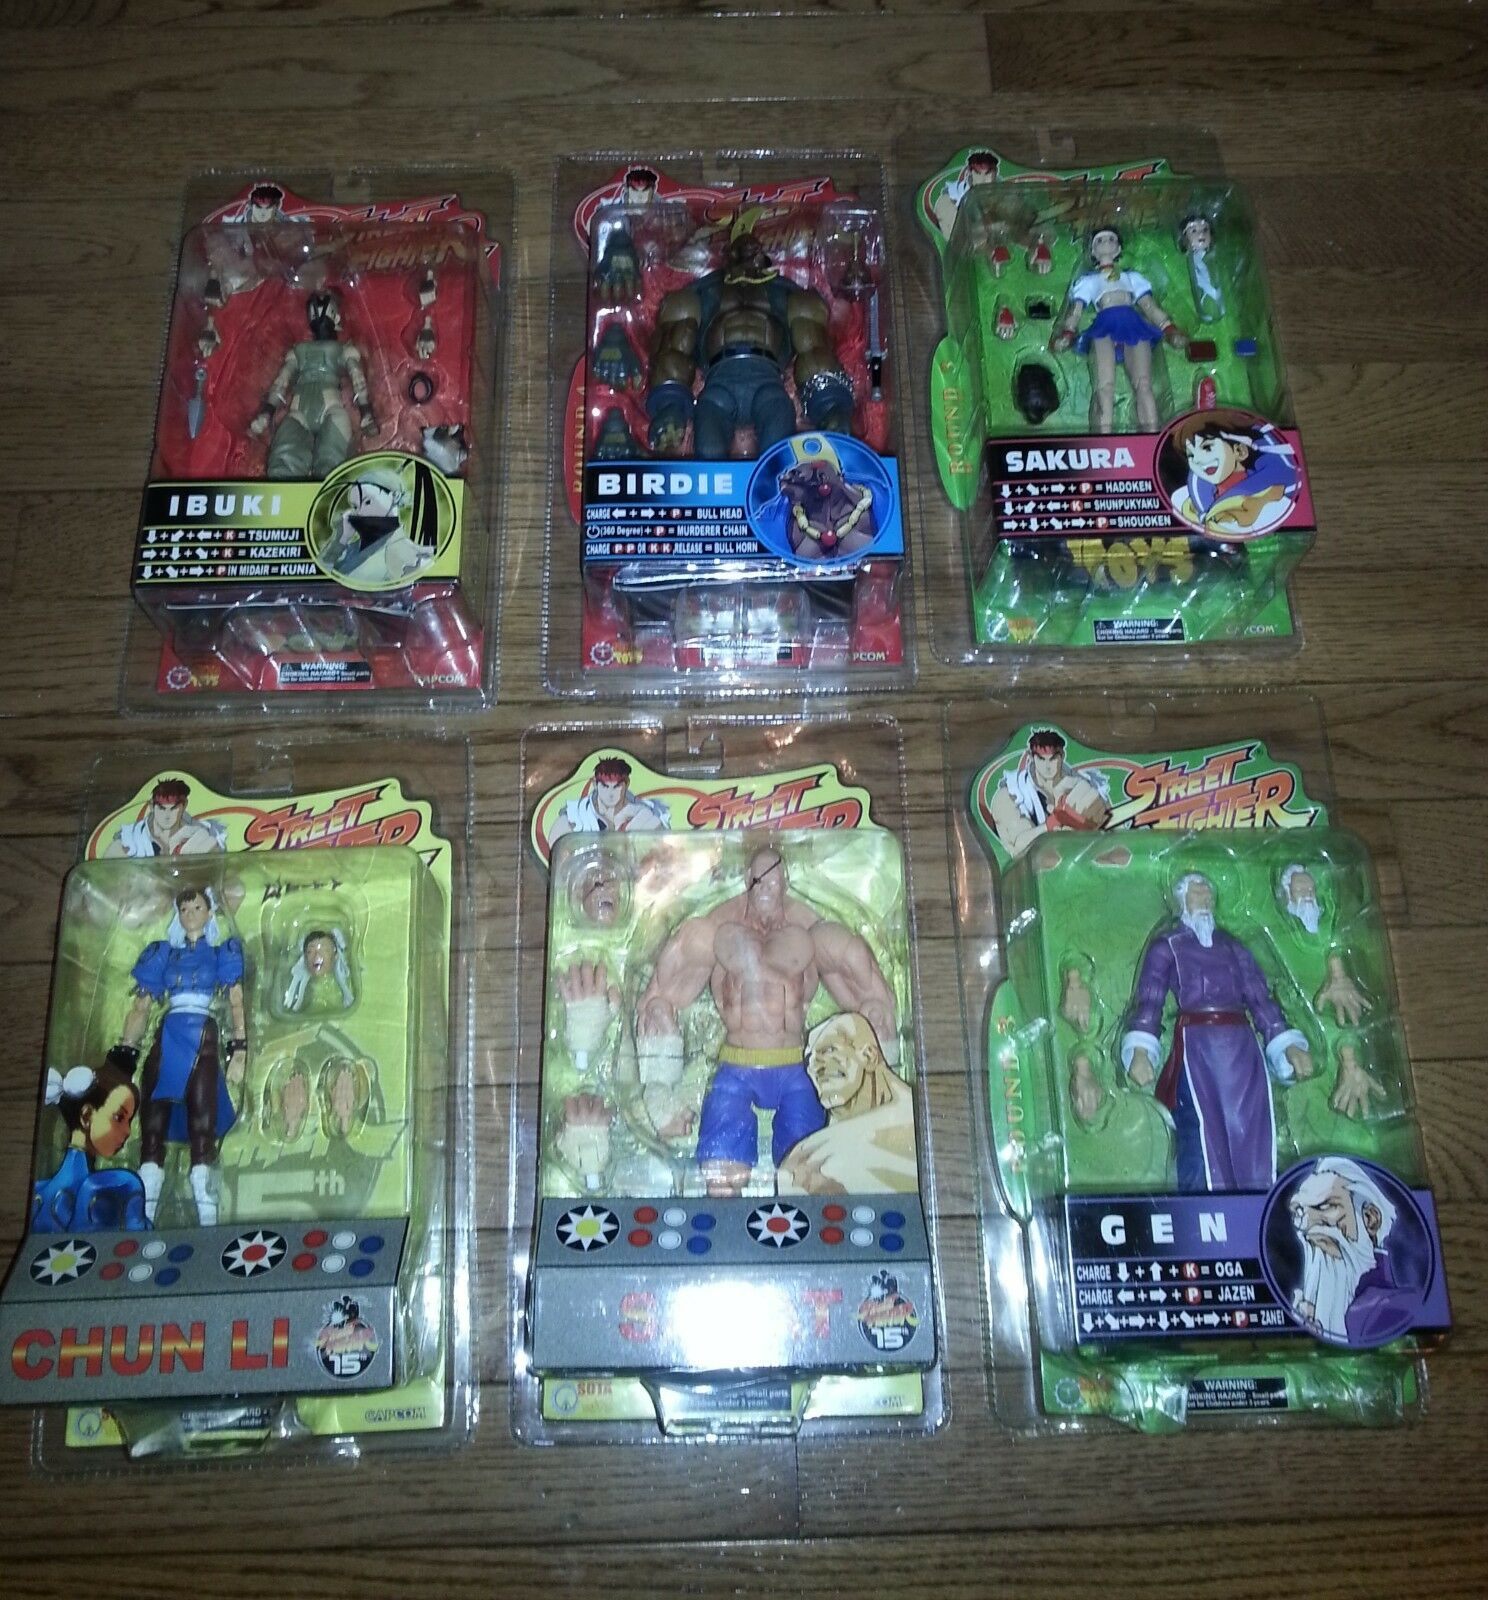 NEW Street Fighter lot of 6 7in Action Figure SOTA TOYS CAPCOM GEN SAGAT BIRDIE